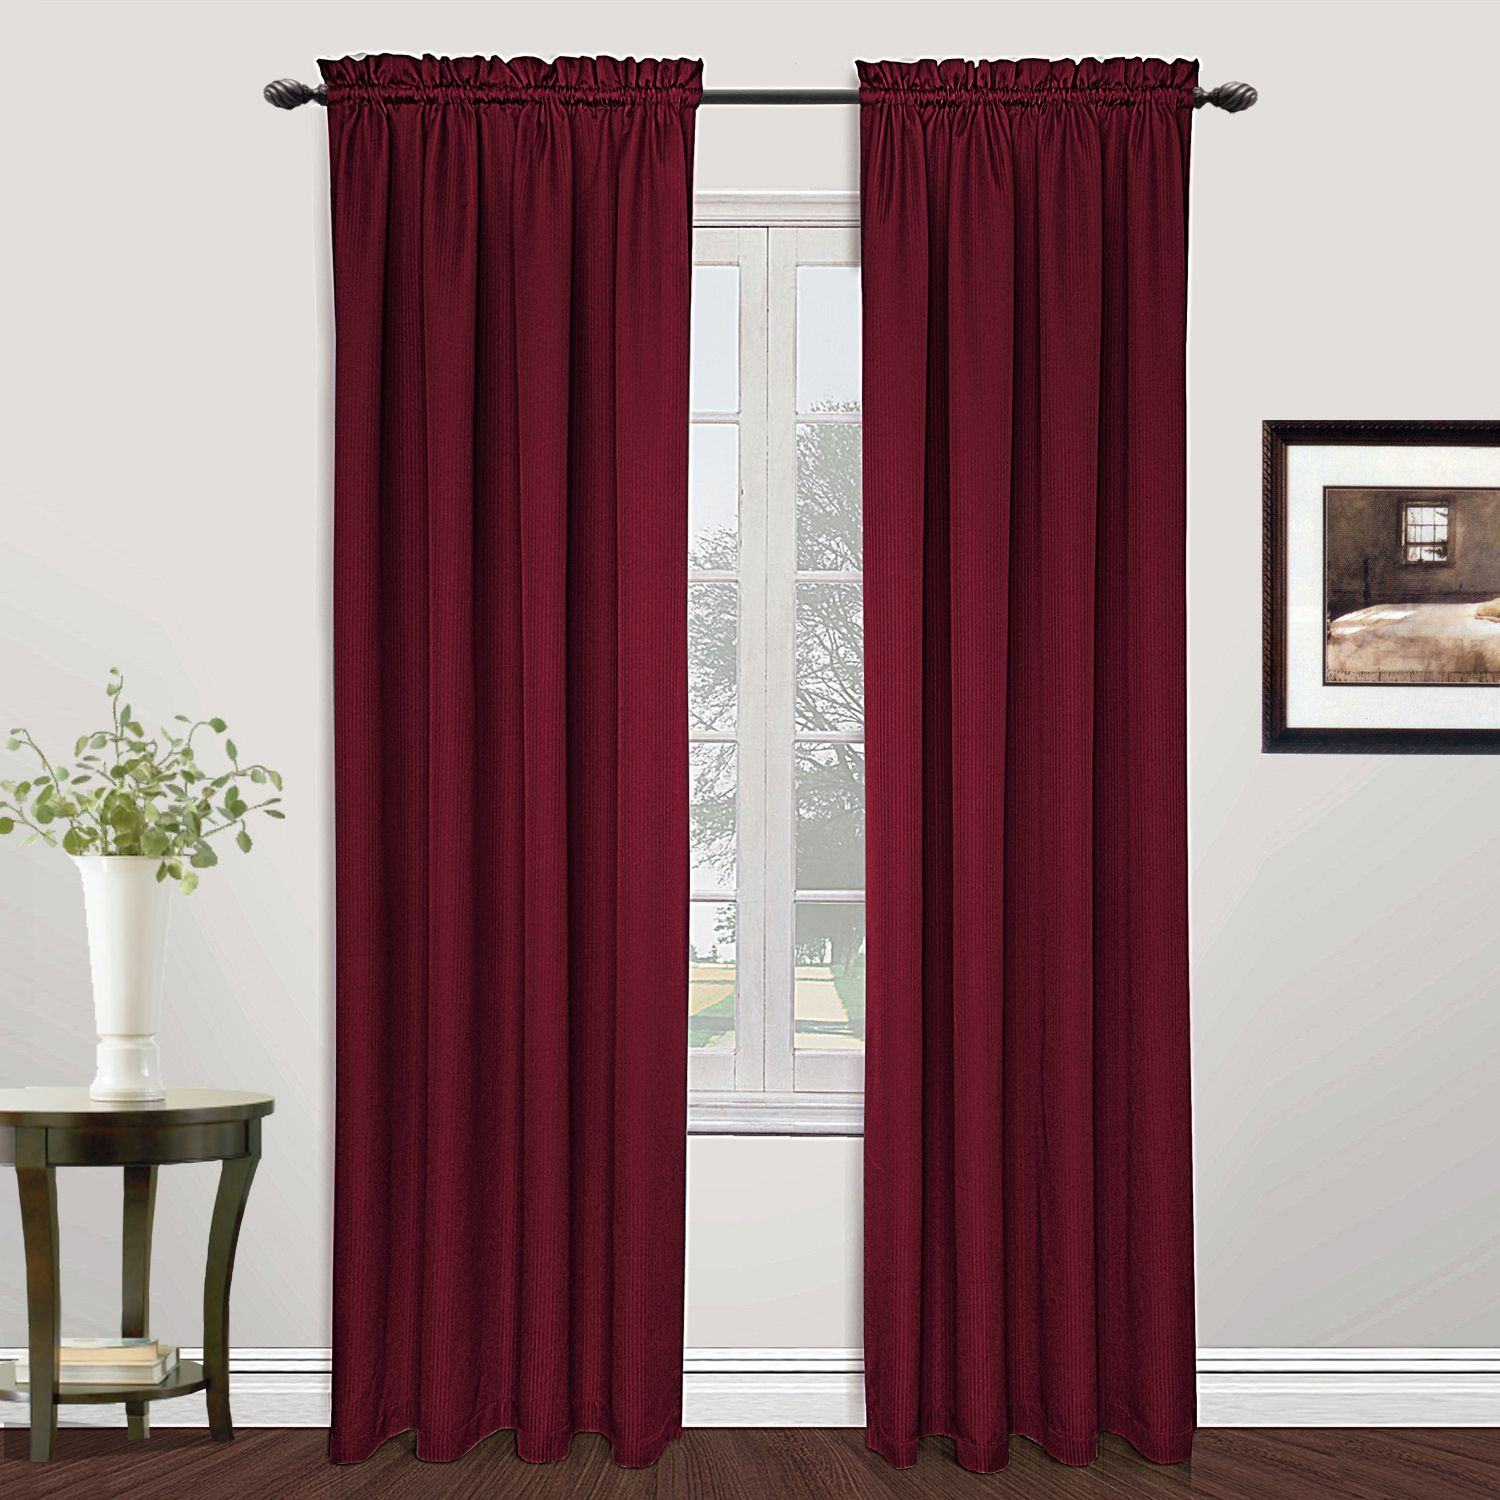 United Metro Curtain Panels 84 Navy Blue Size 54 x 84 Polyester